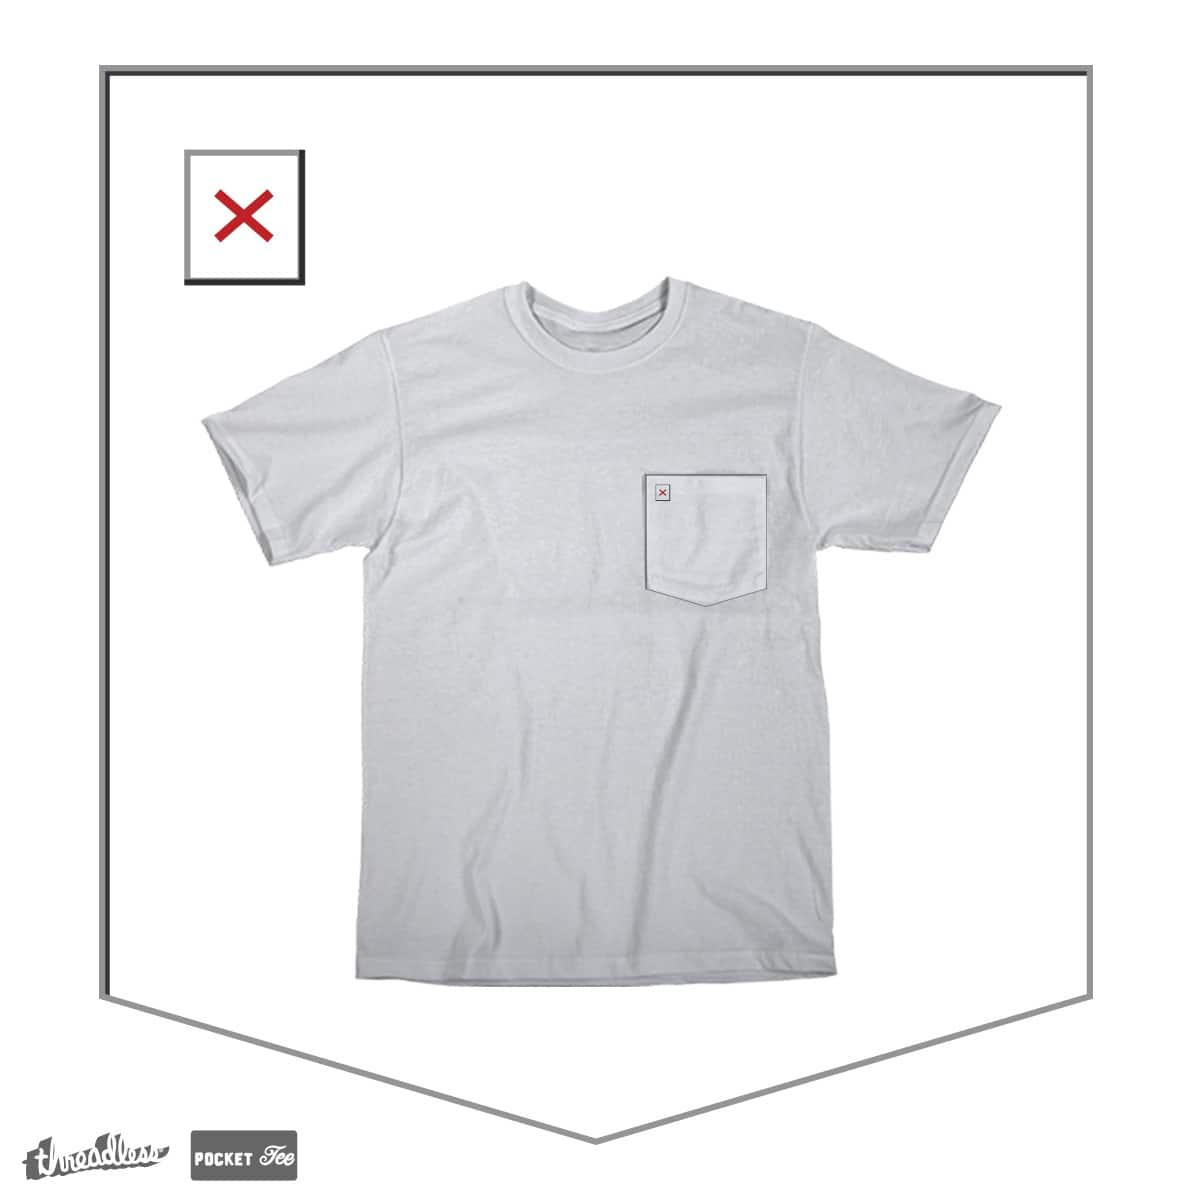 Image not found by ThibaultC on Threadless